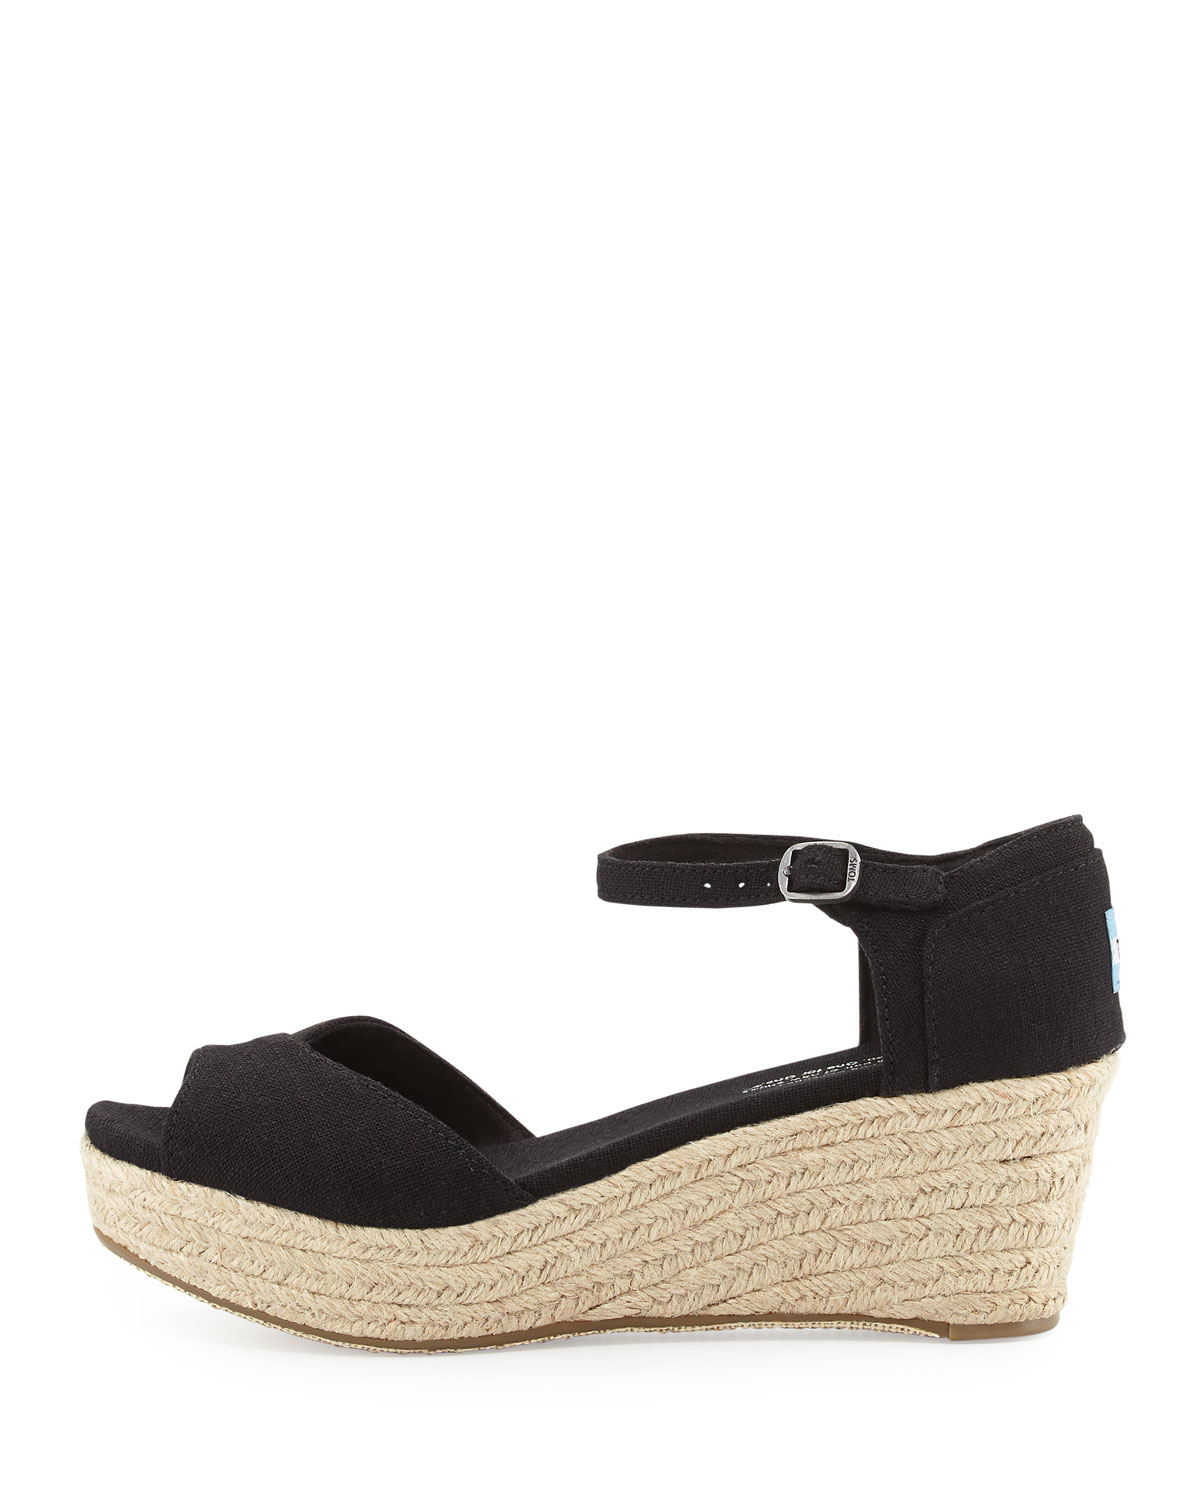 toms canvas platform wedge sandal in black lyst